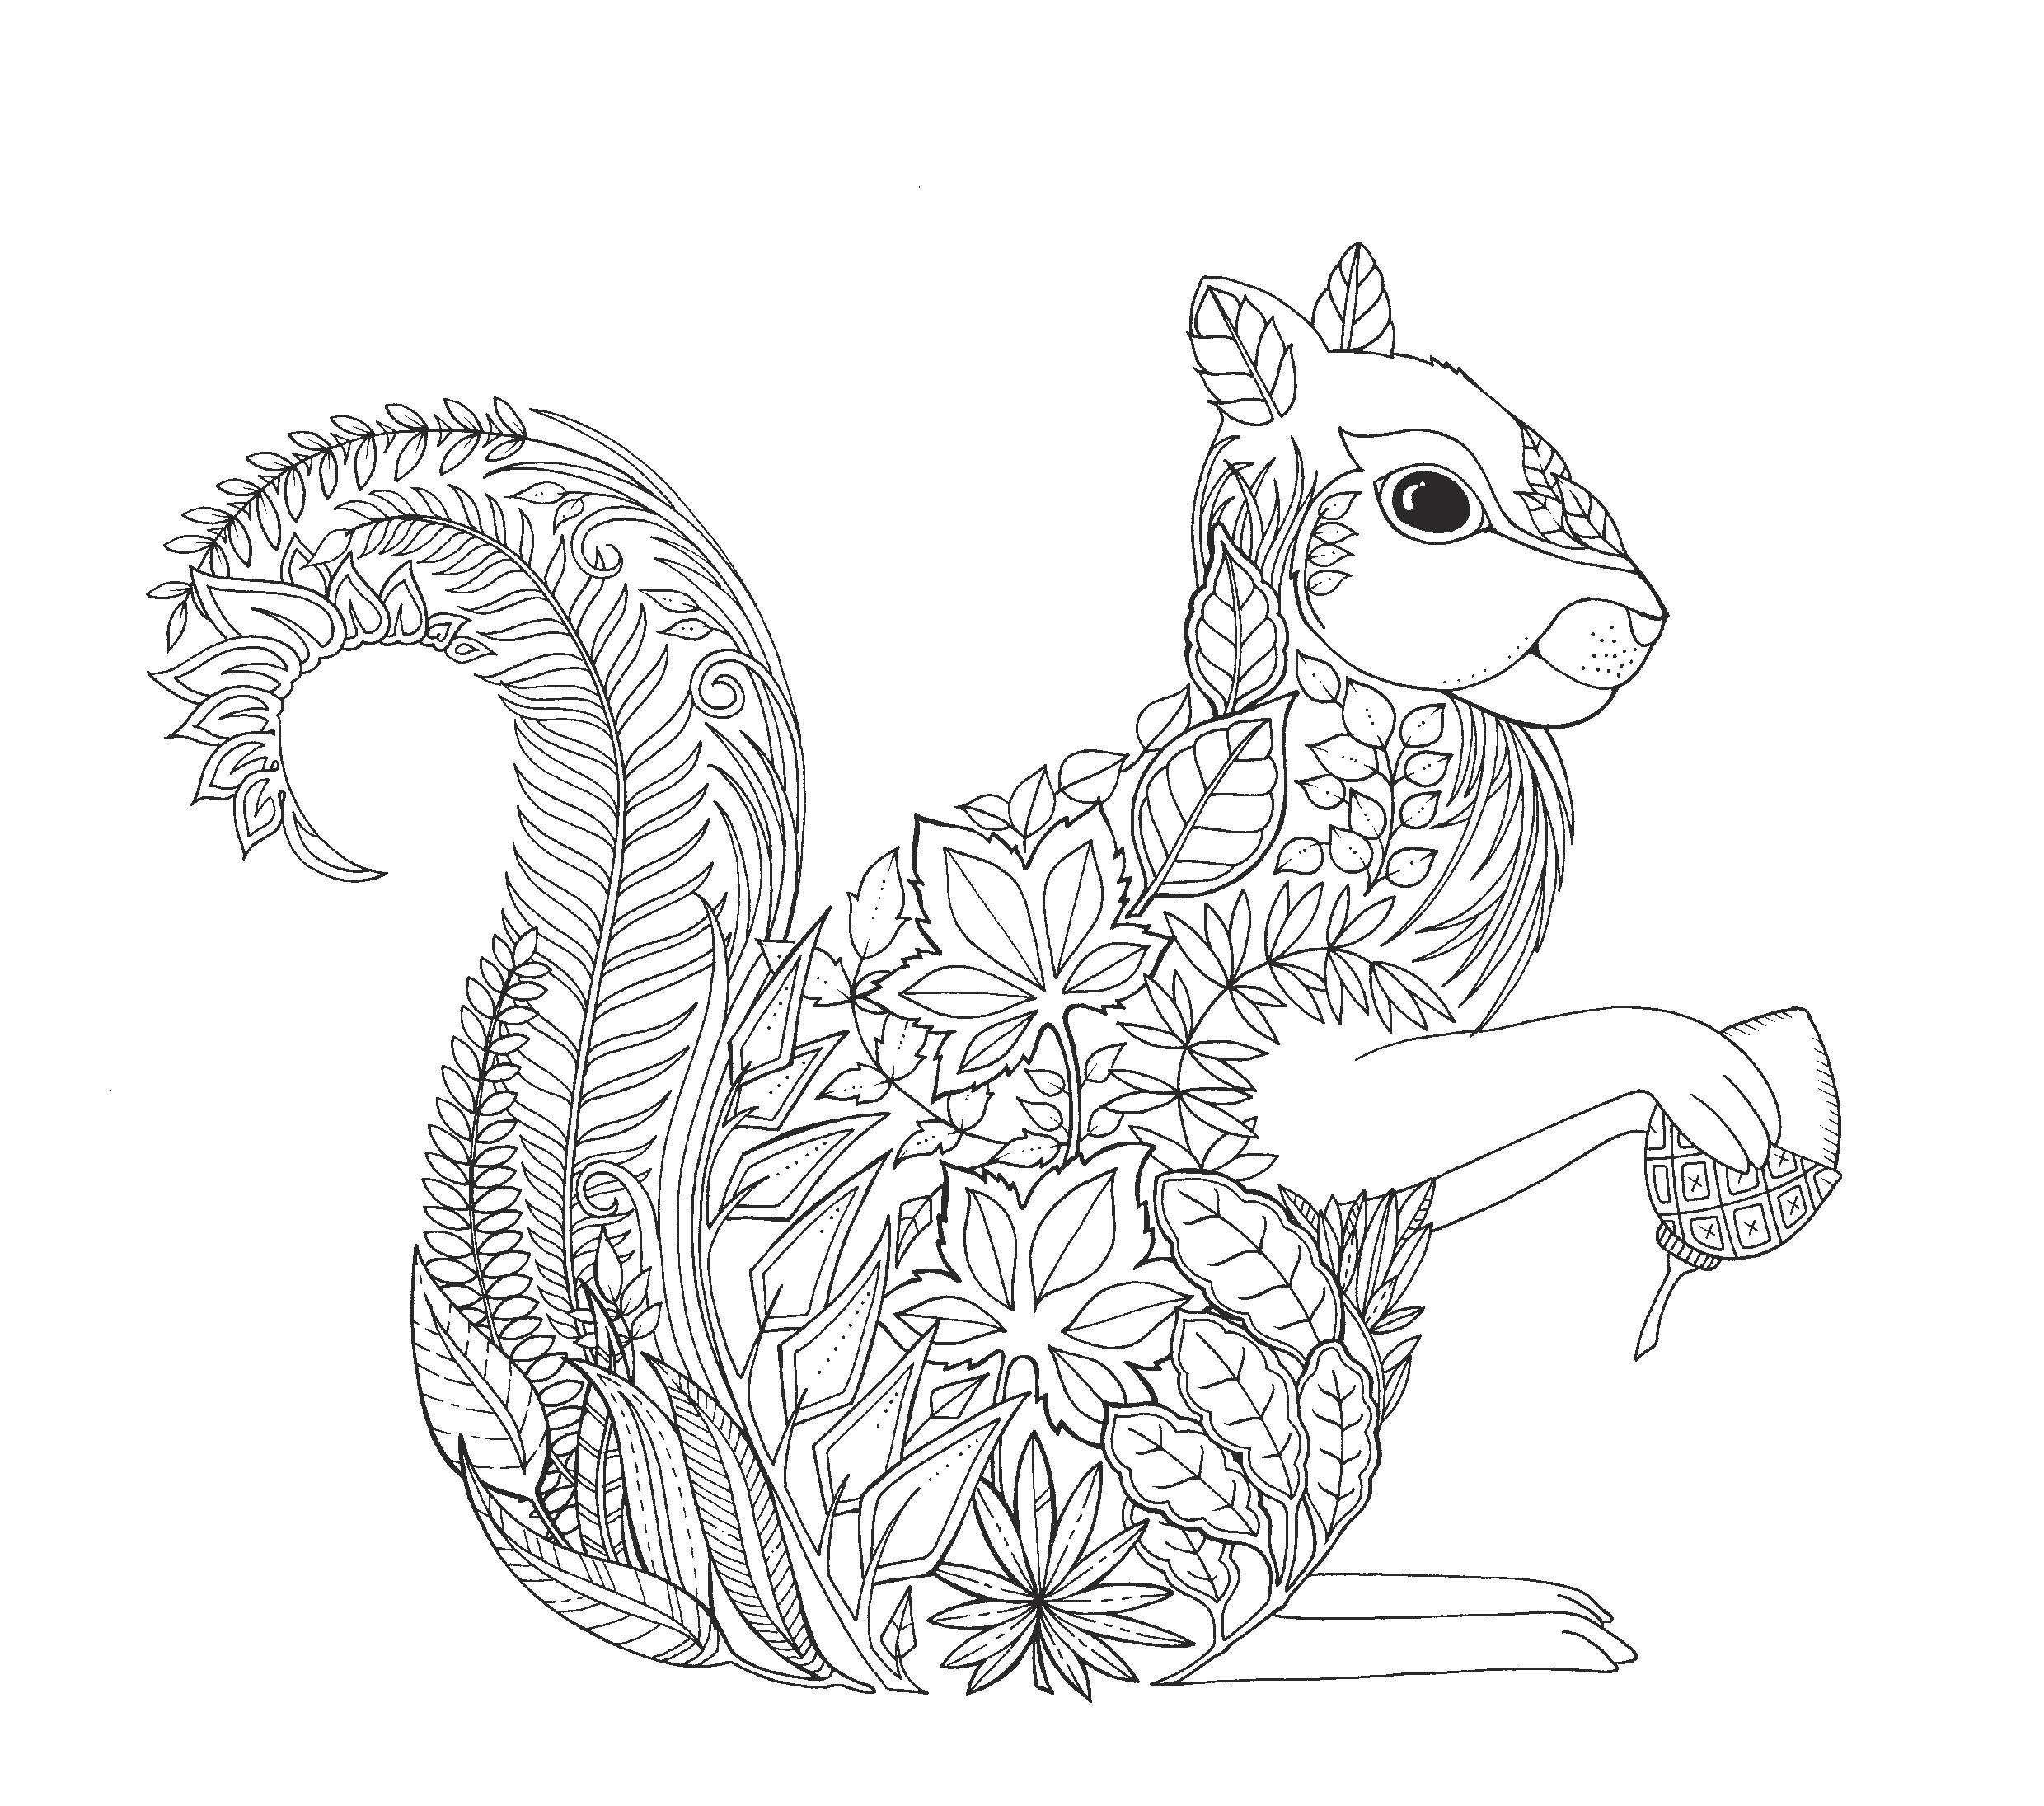 Squirrel Artist Johanna Basford Enchanted Forest Coloring Pages Garden Flower Colouring Adult Detailed Advanced Printable Kleuren